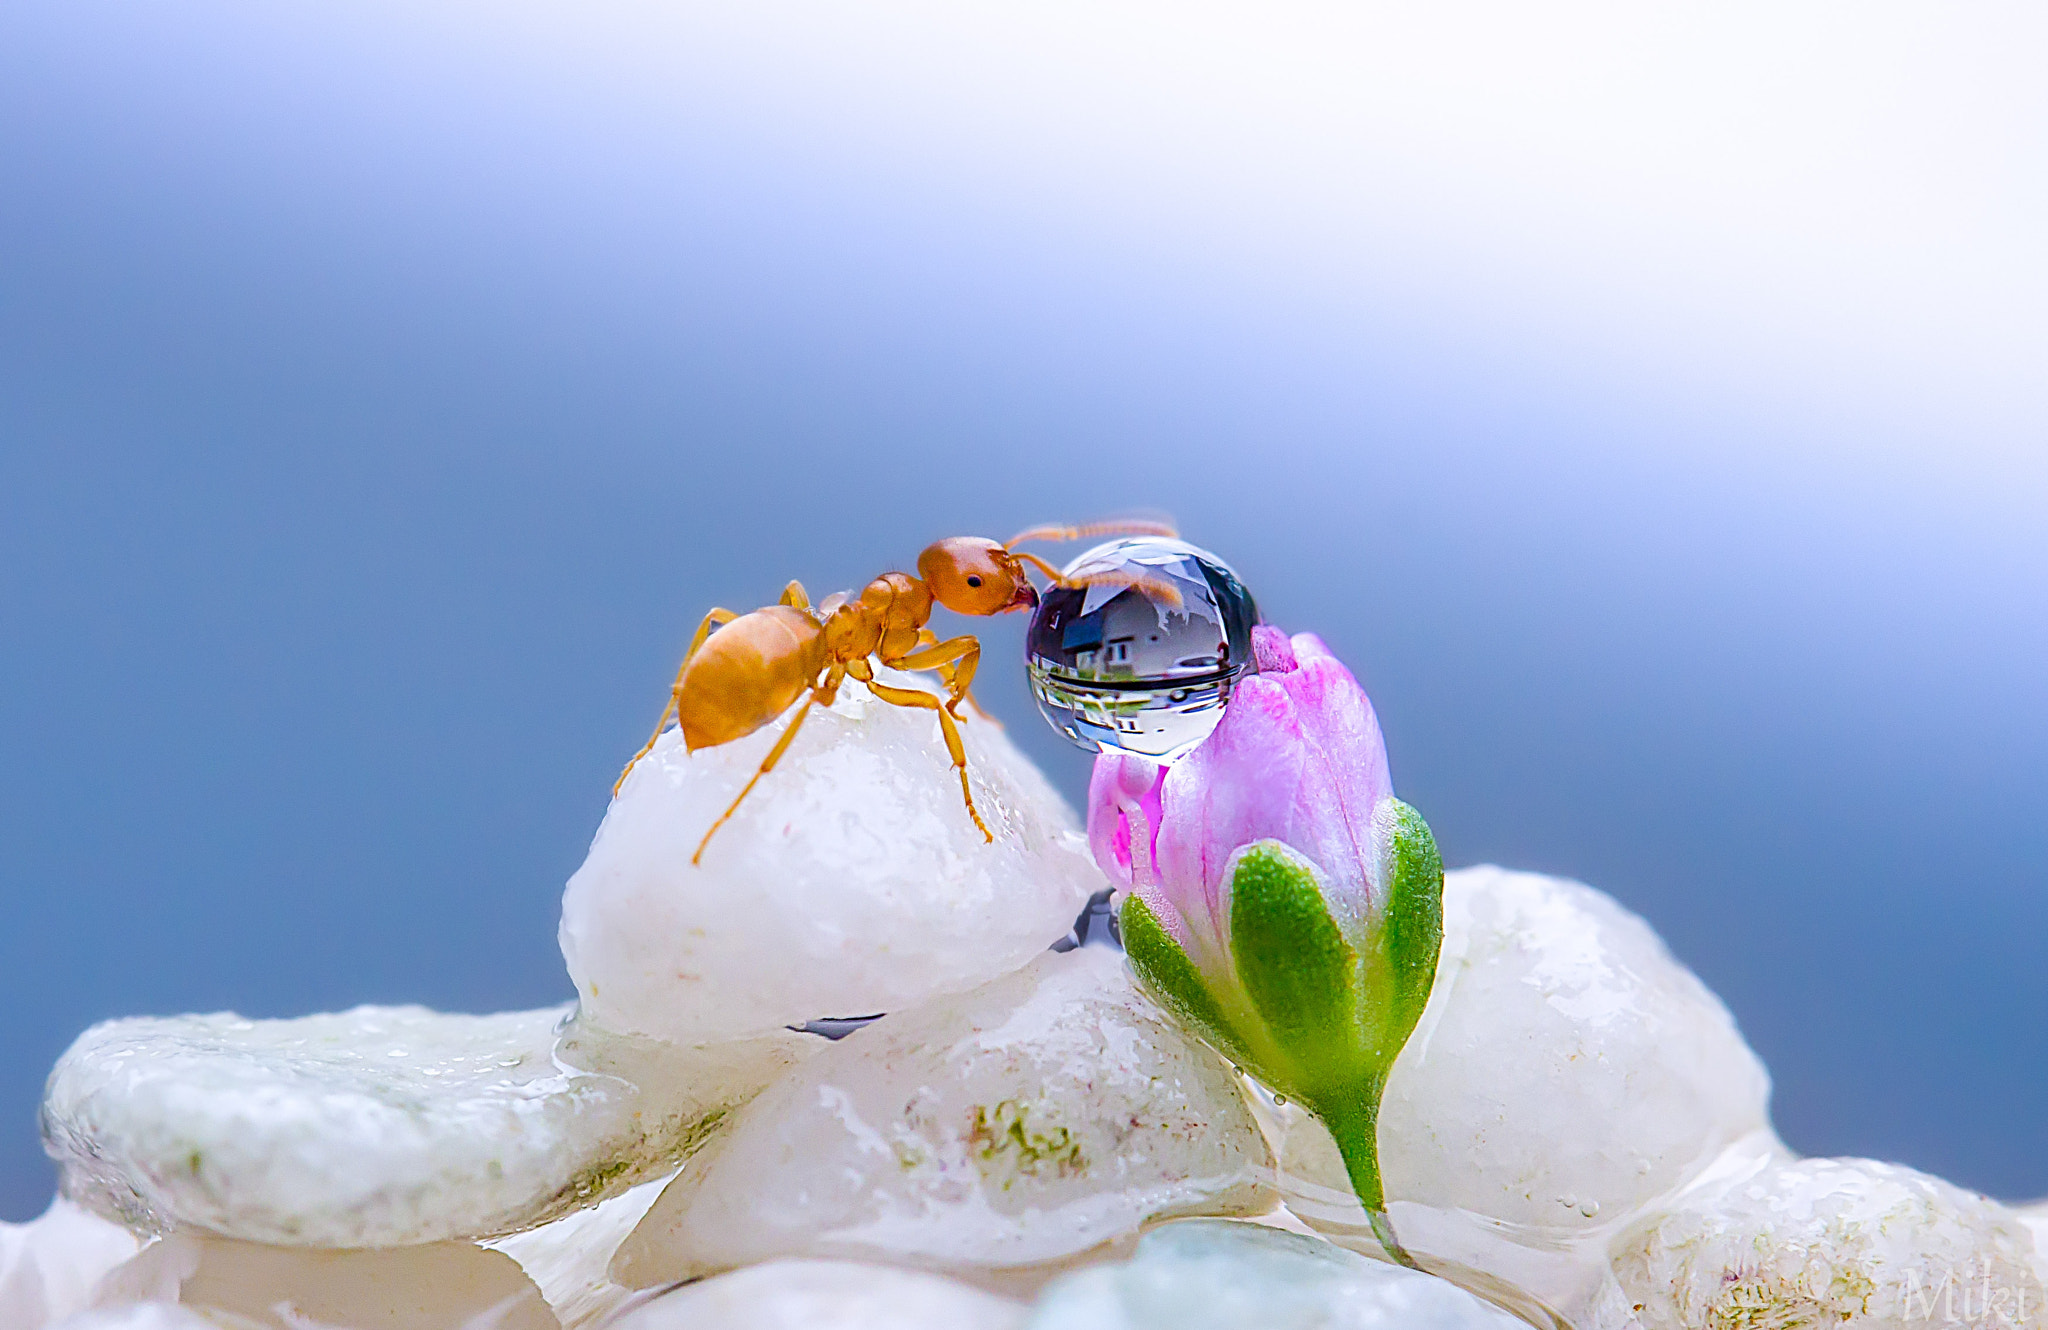 Photograph Treasure Hunter by Miki Asai on 500px